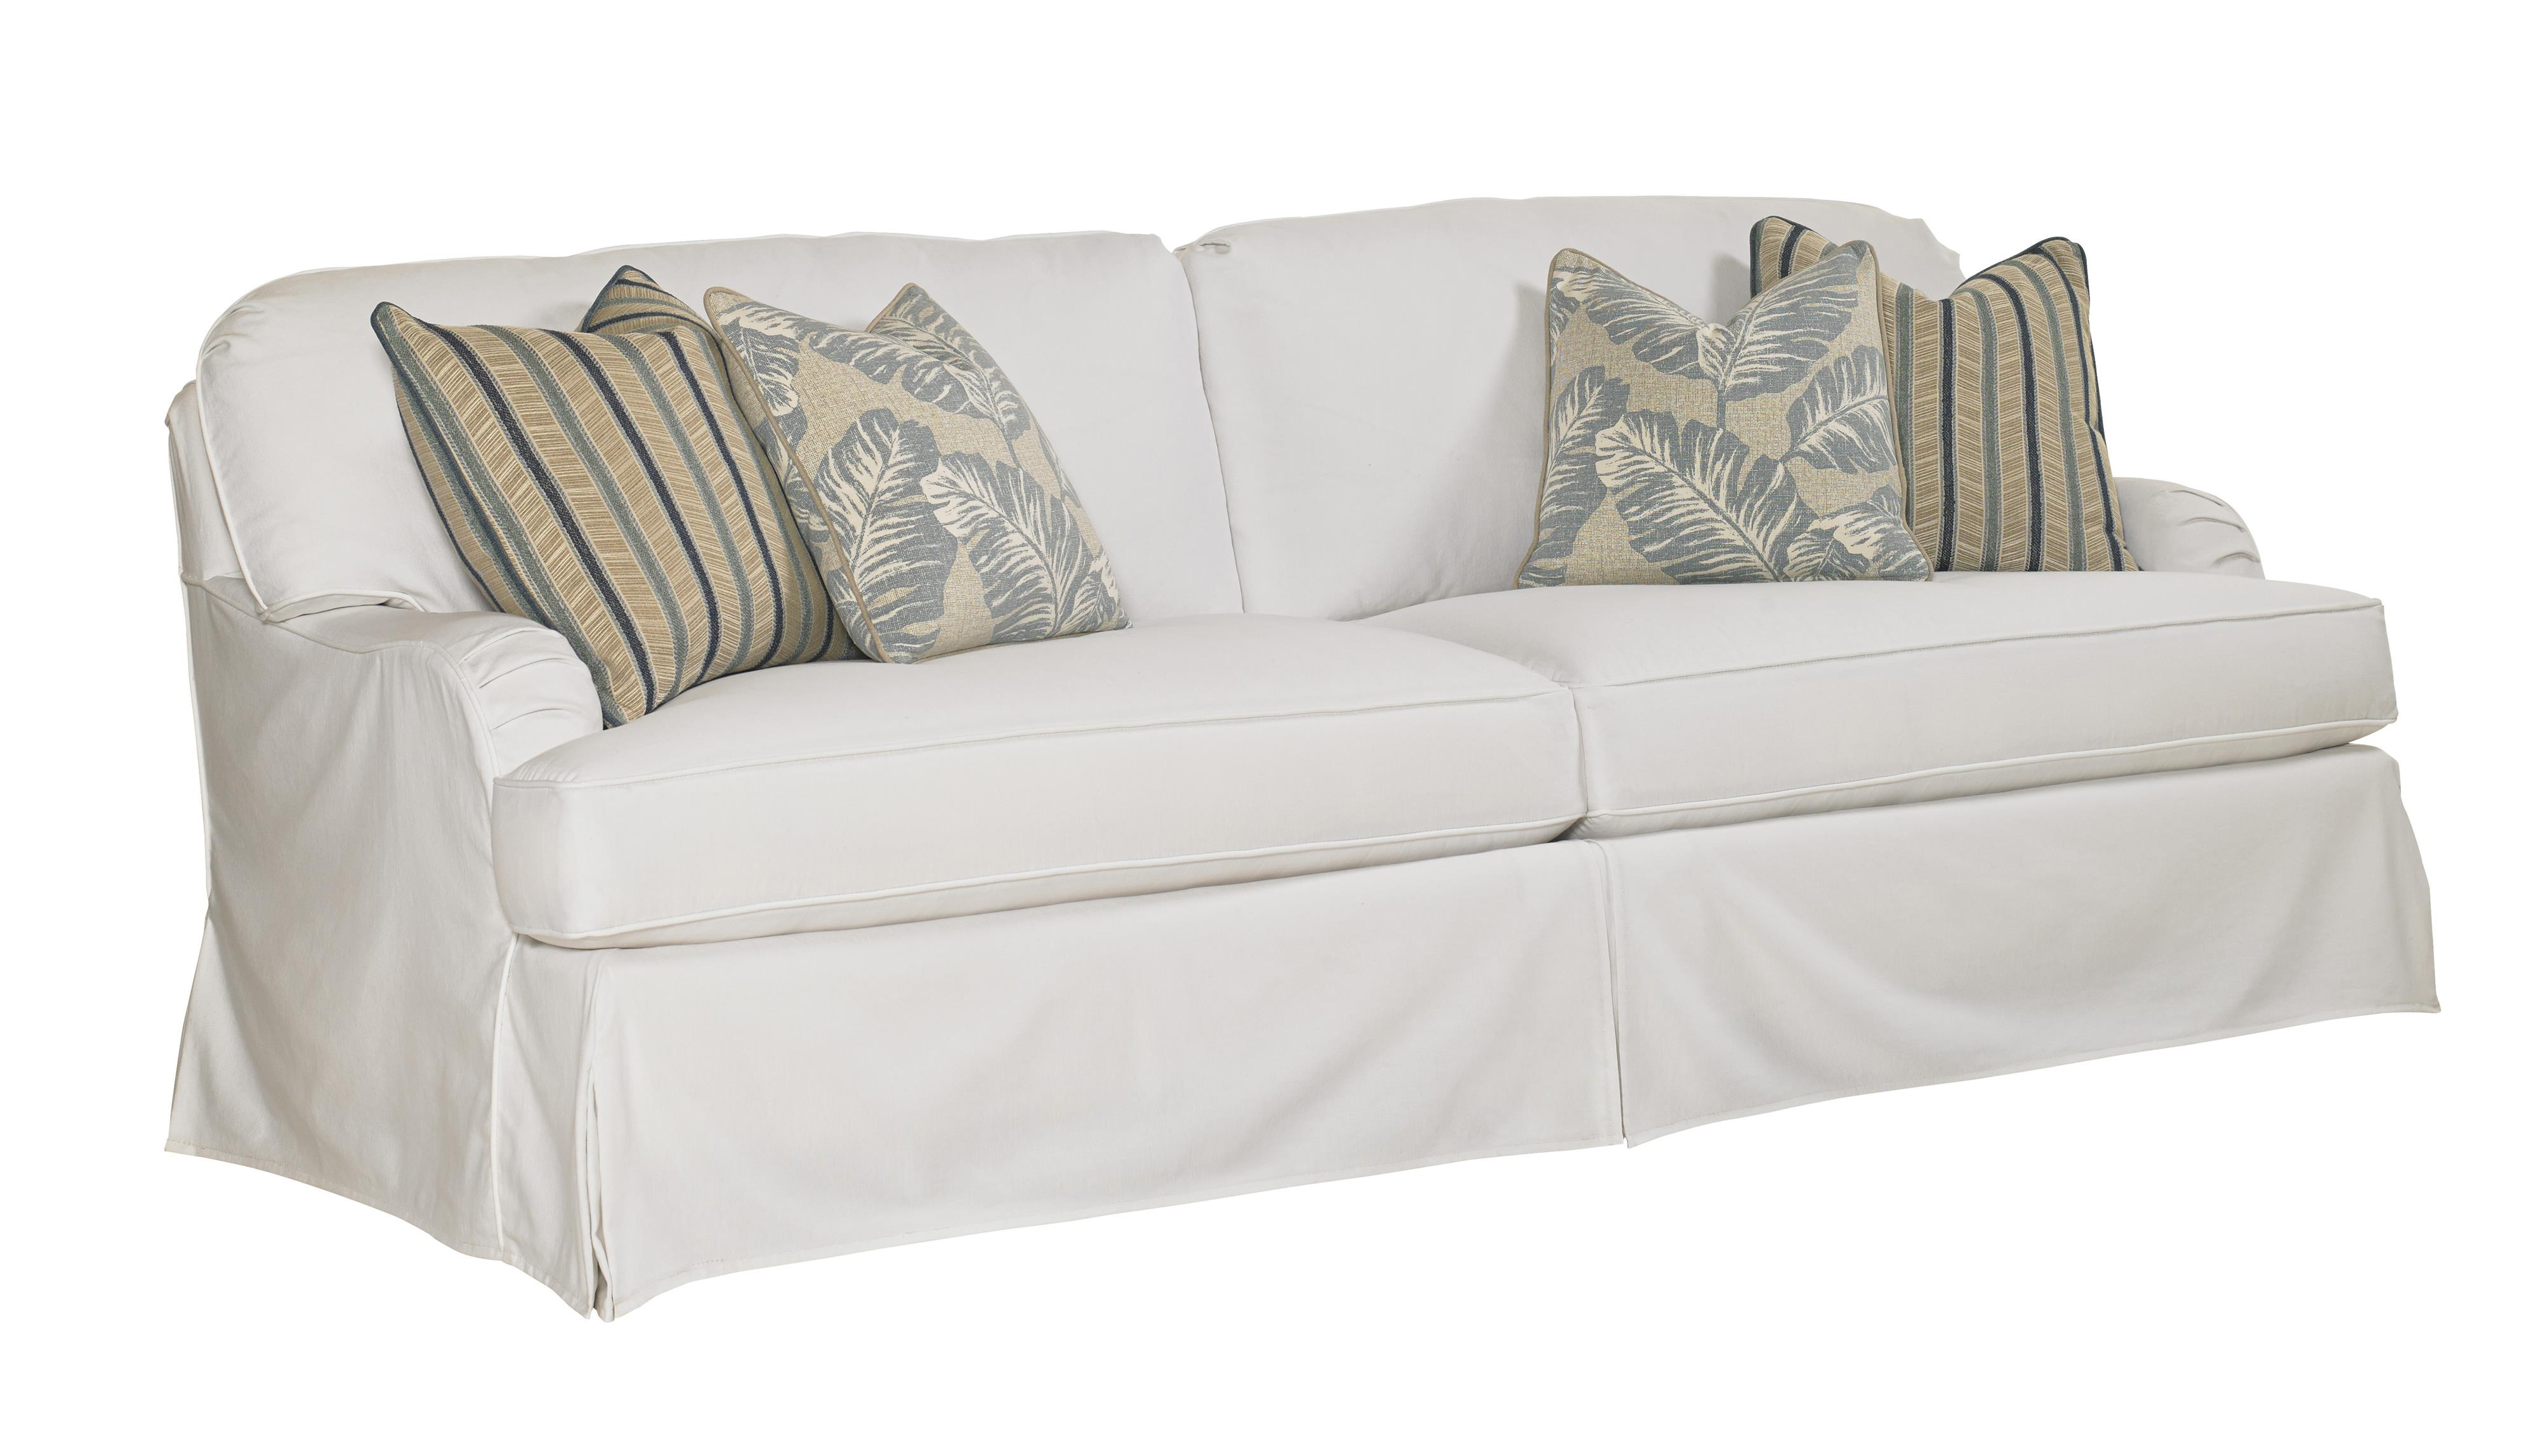 coventry hills stowe slipcover sofa